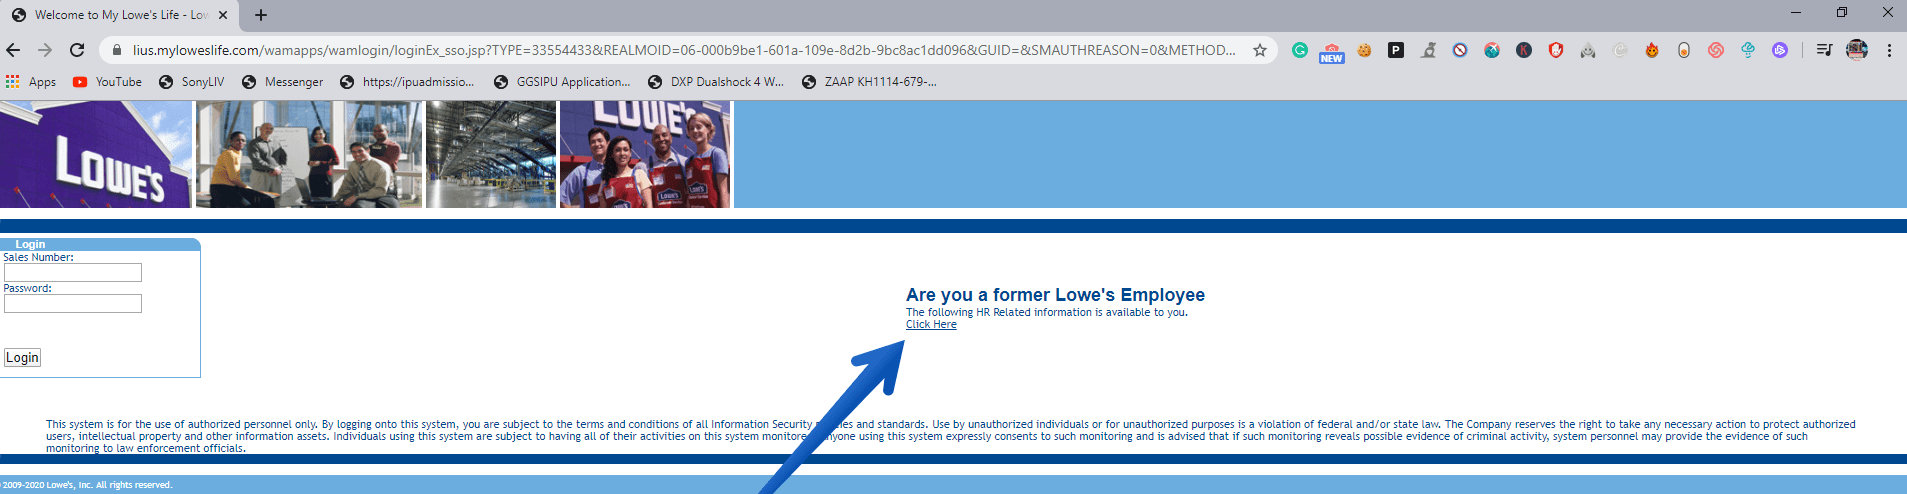 Former Employee Myloweslife Login